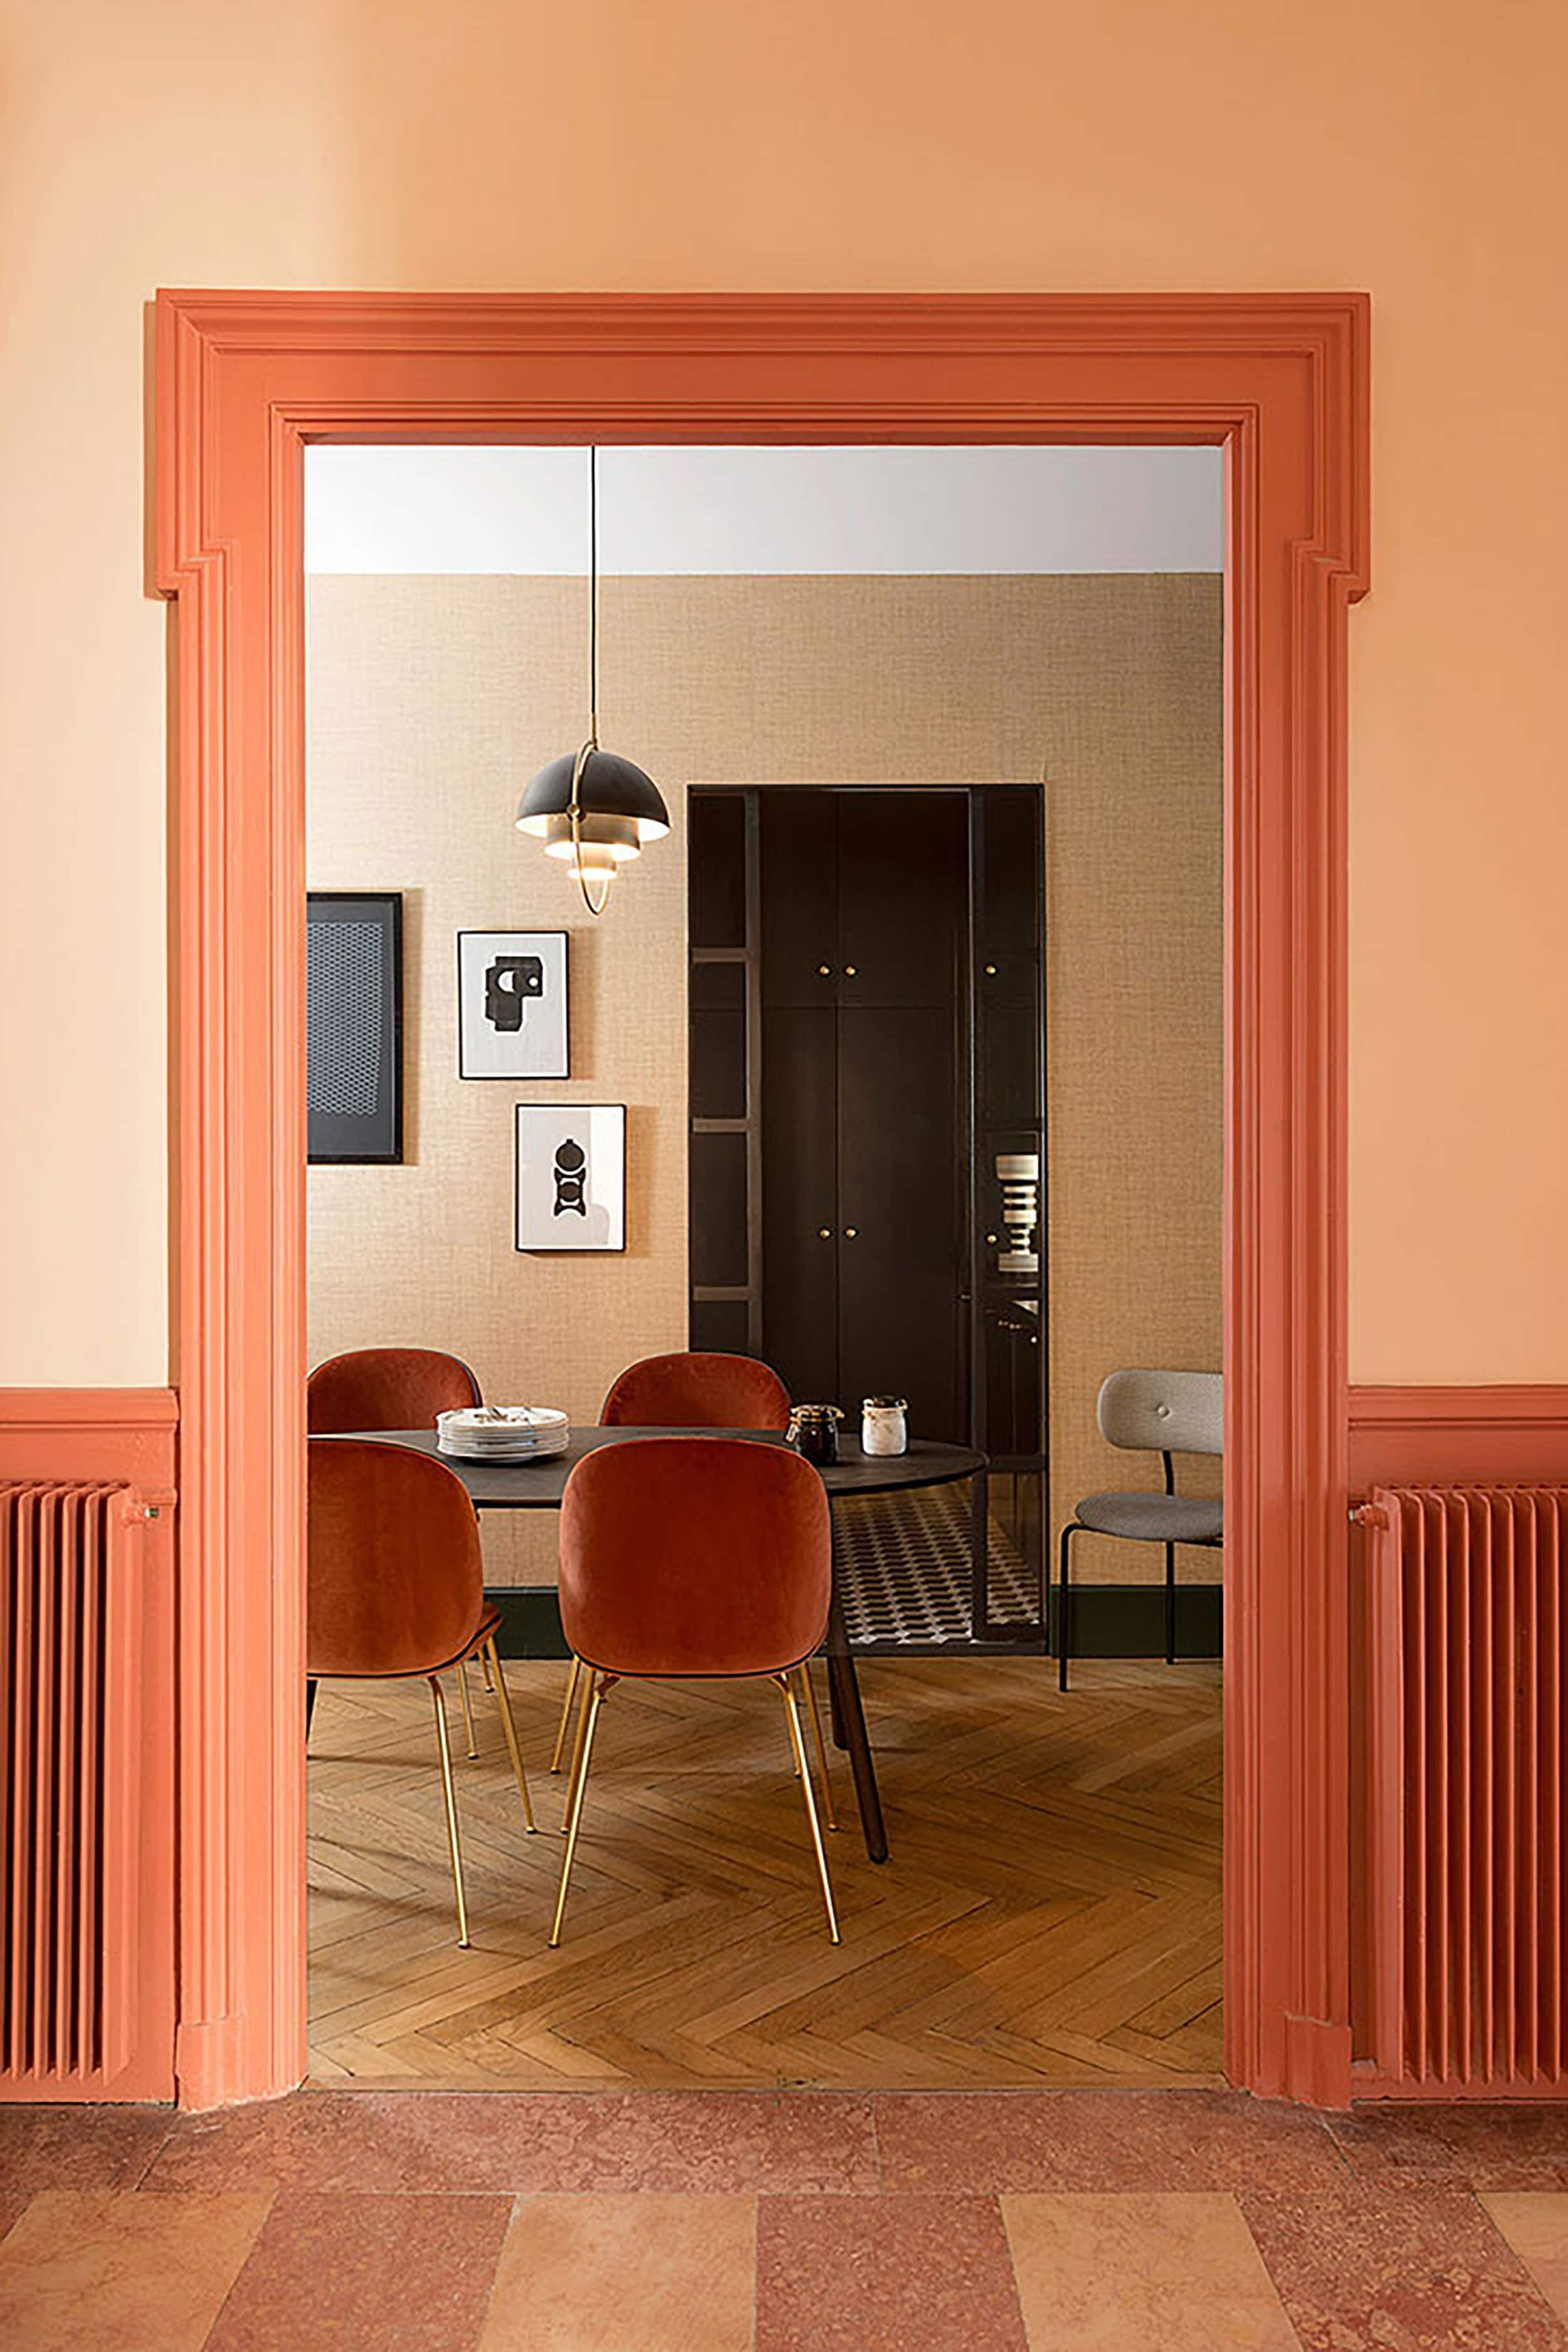 10 Unexpected Yet Chic Color Schemes To Try At Home In 2020 Room Colors Living Room Colors Room Color Schemes